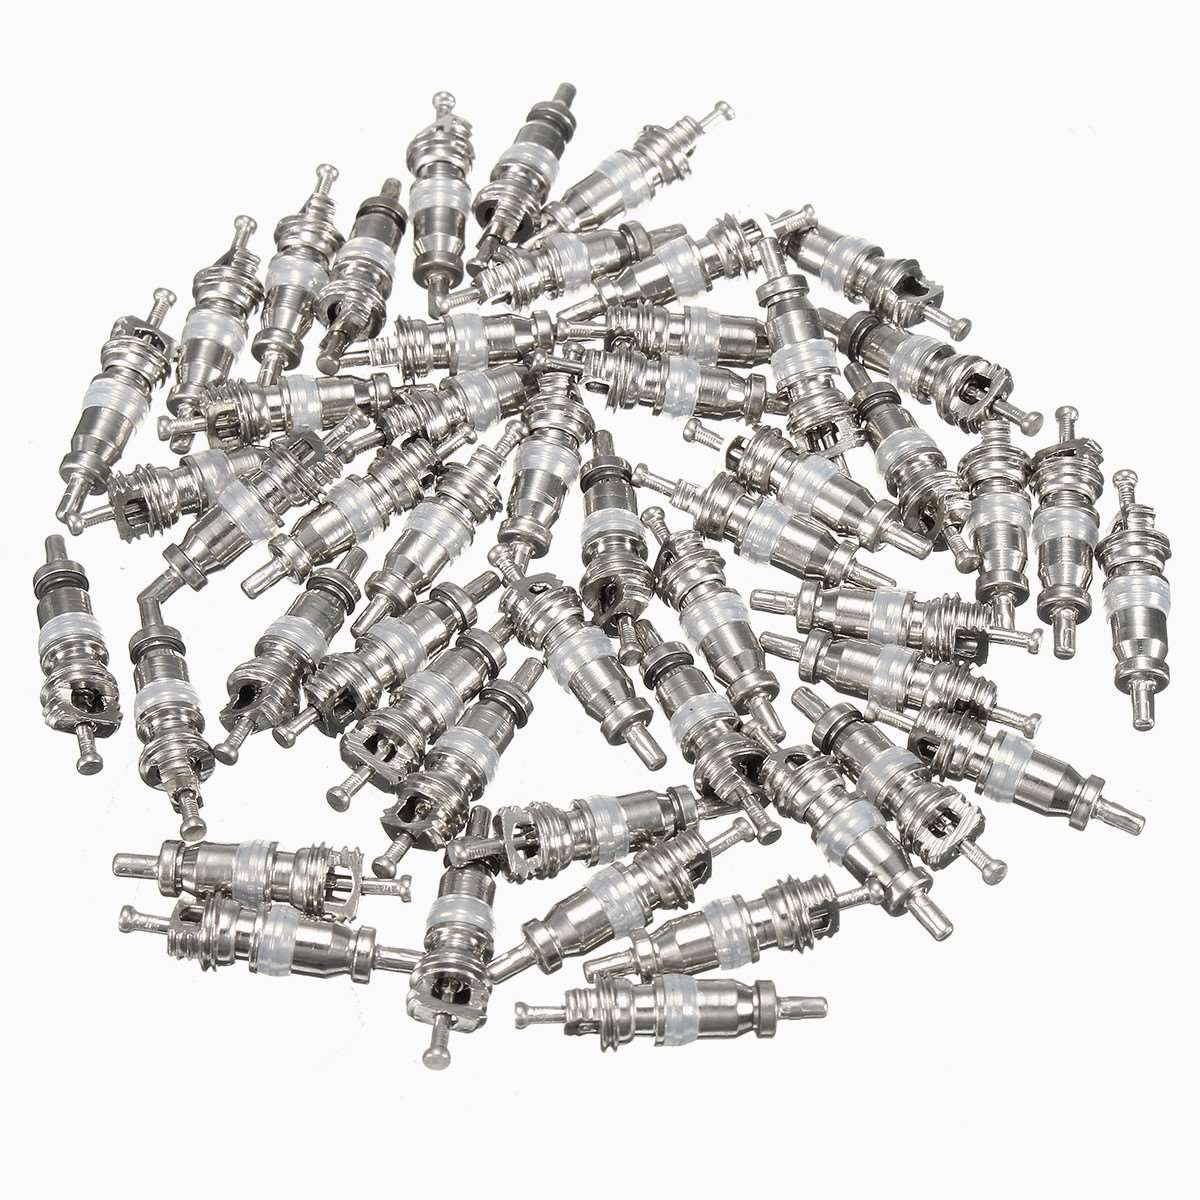 MONNY 50Pcs White A/C Valve Core AC Schrader Air Conditioning Valves For R134A Shrader by MONNY (Image #1)